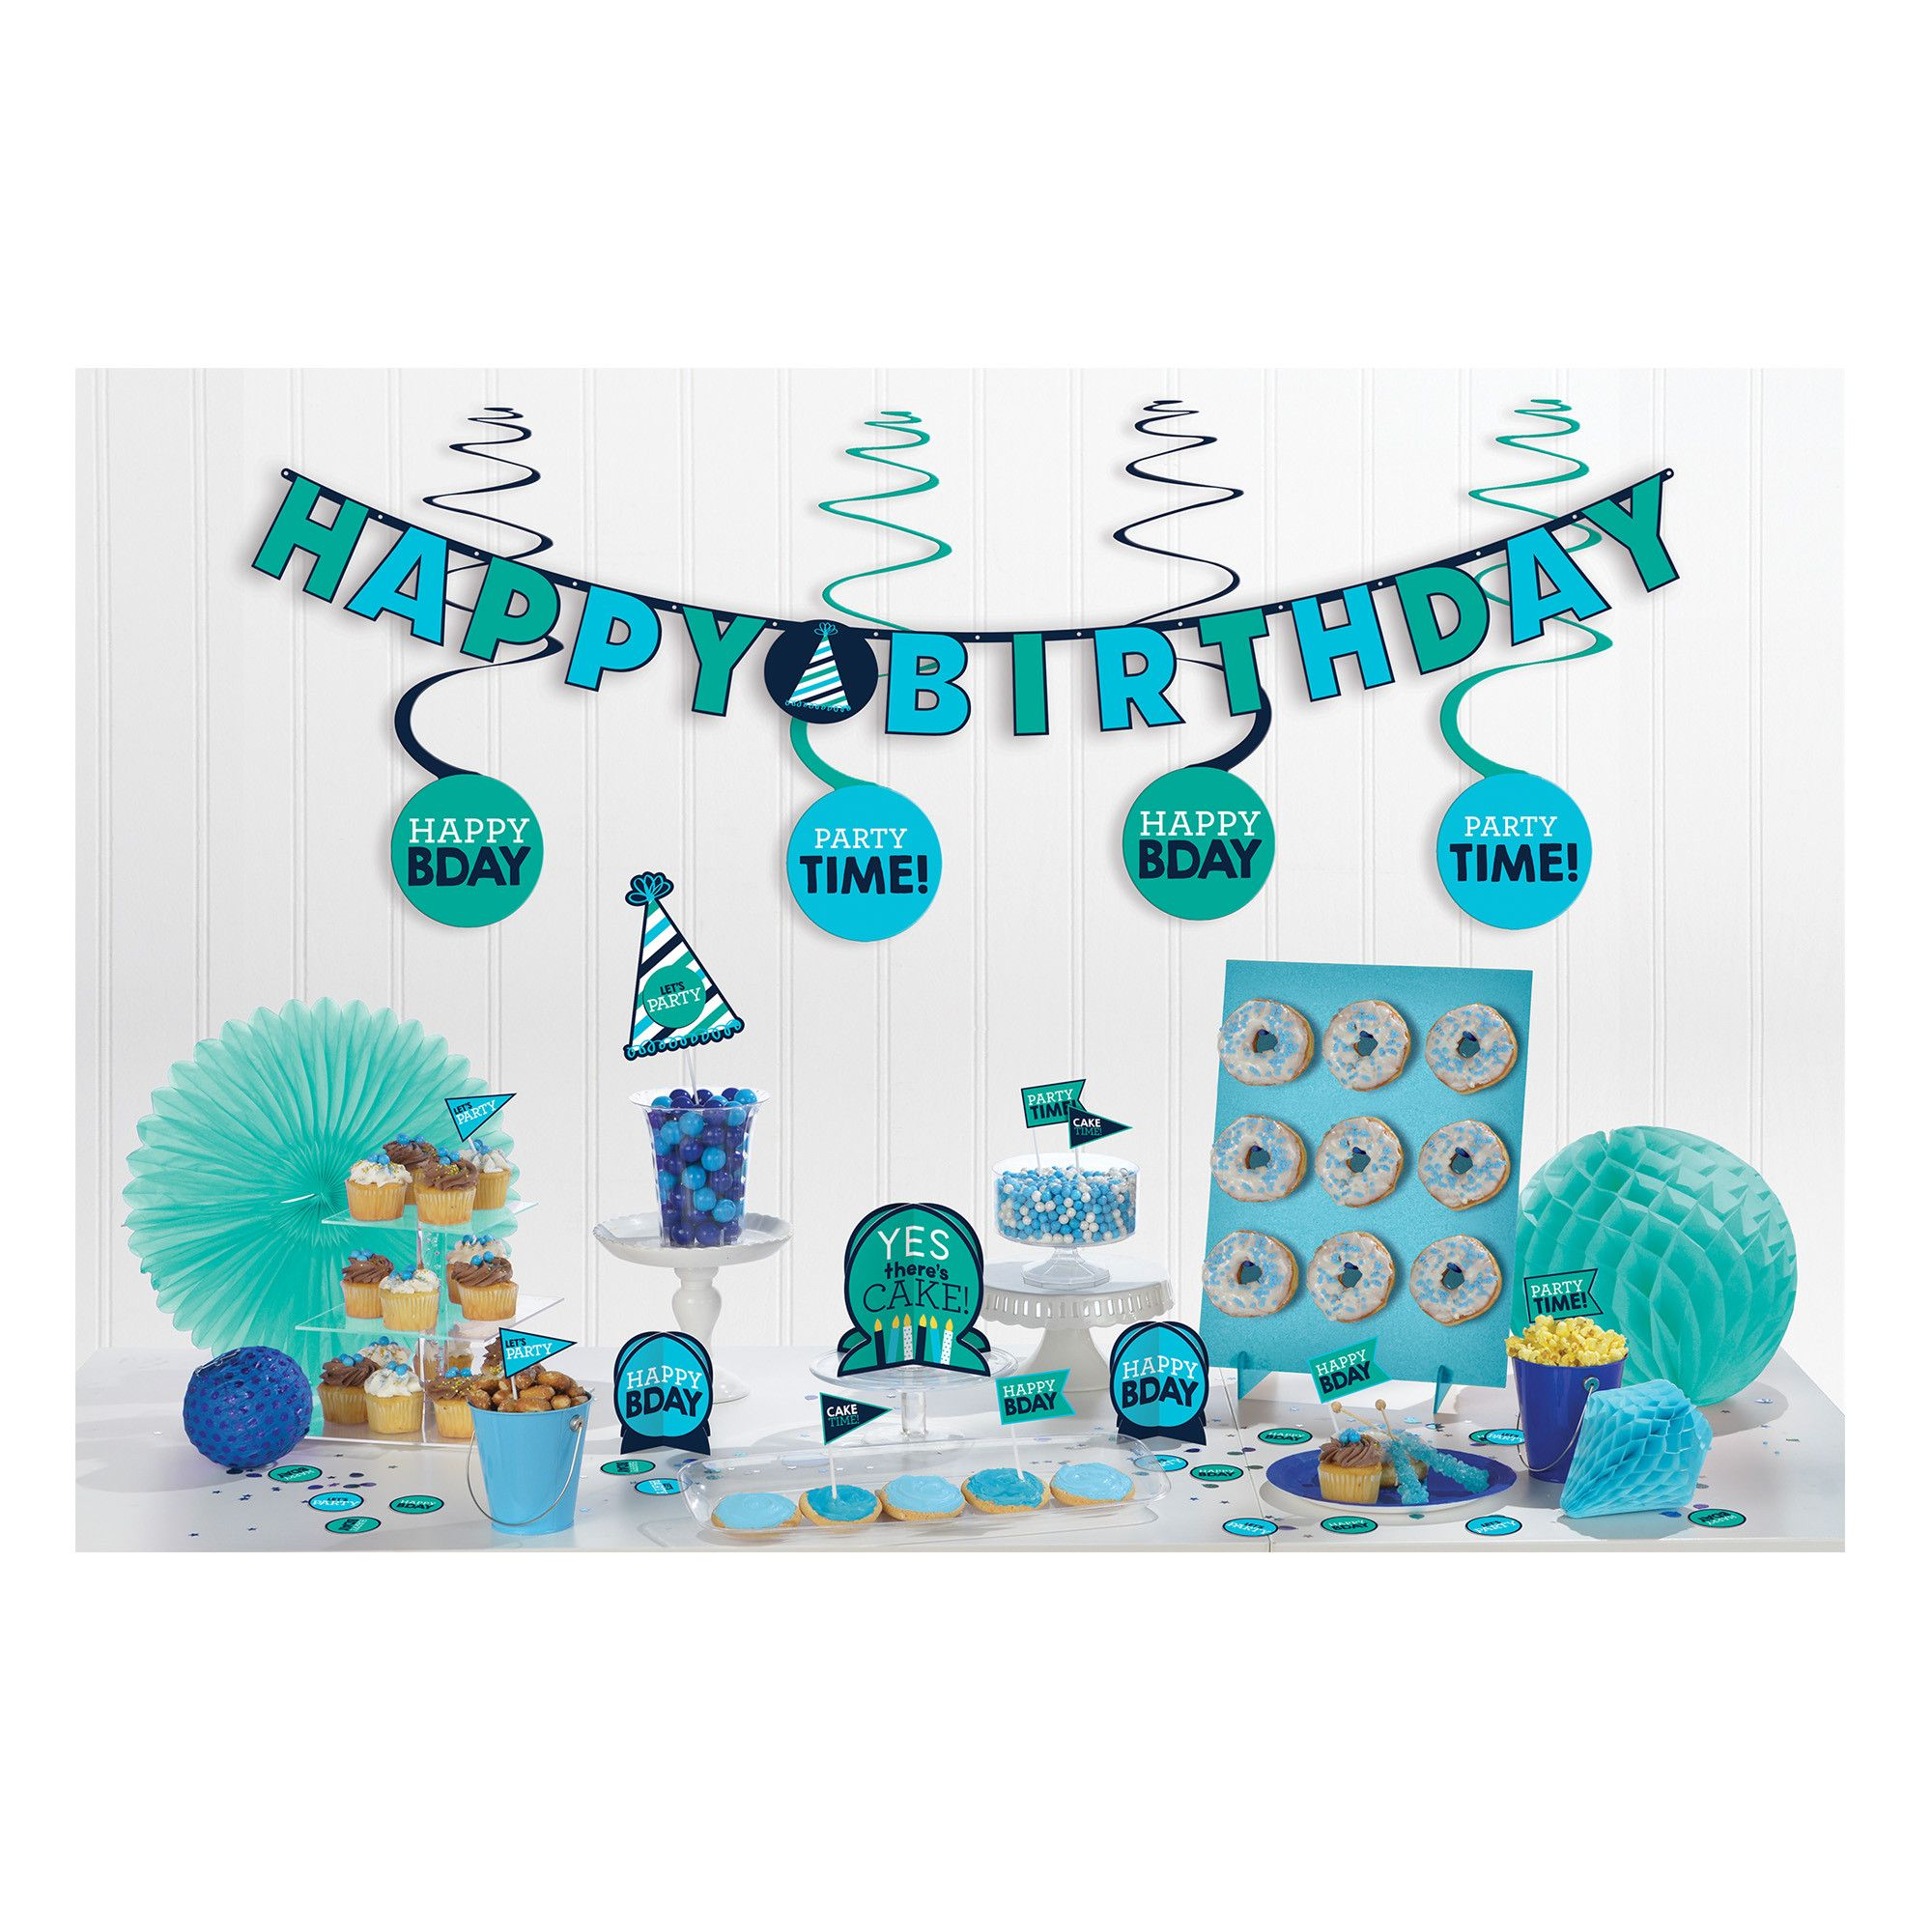 Bday Access Blues Mini Deco Kit